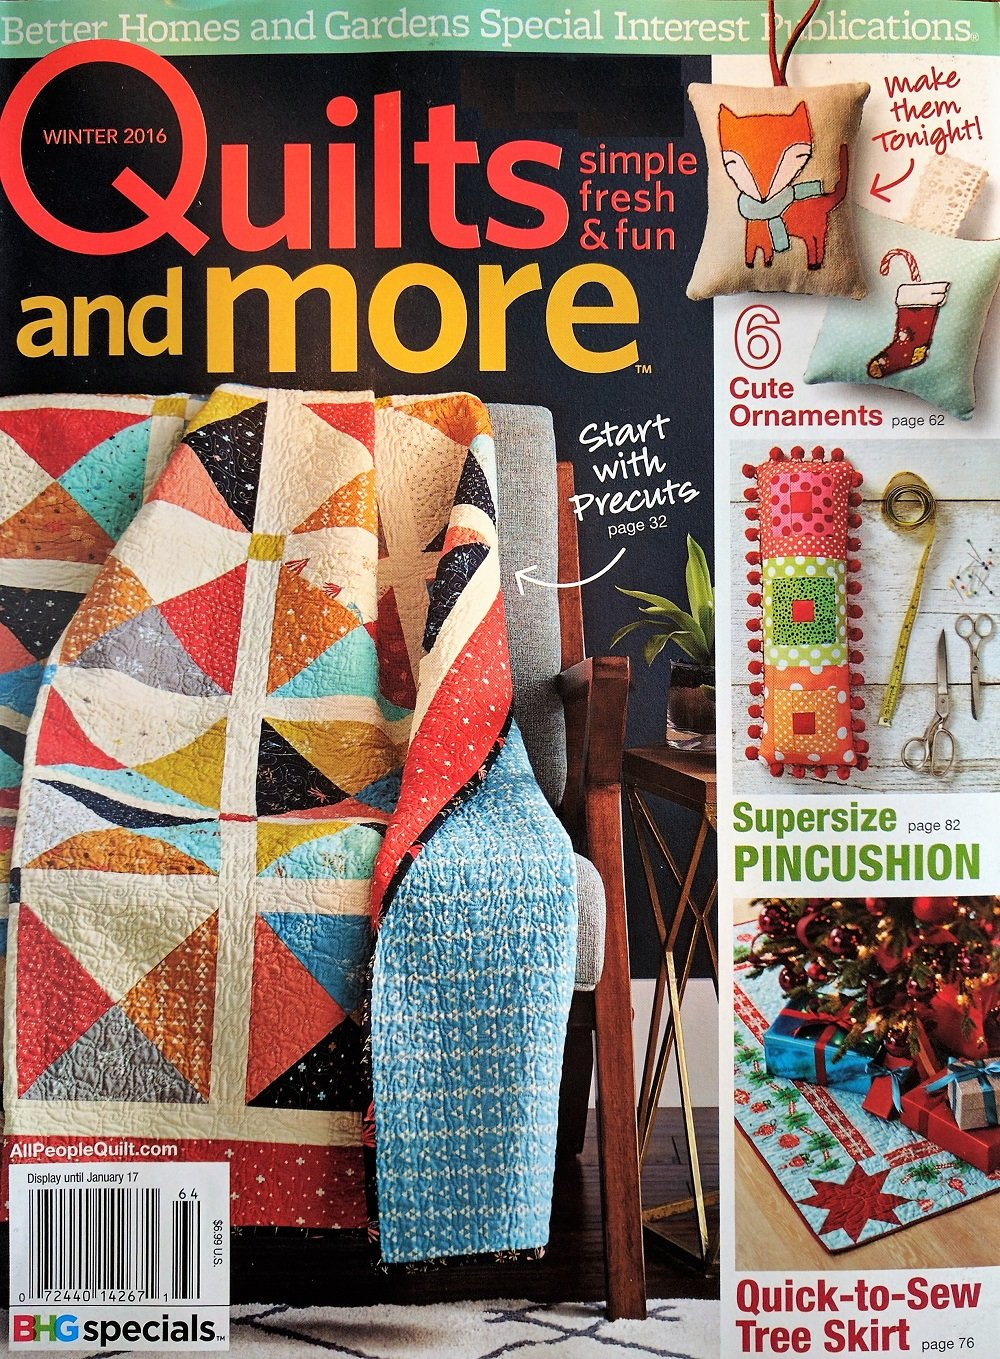 Quilts and More Magazine (Winter 2016 Issue - Start with Precuts, Christmas Ornaments, Pincushion & More) ebook